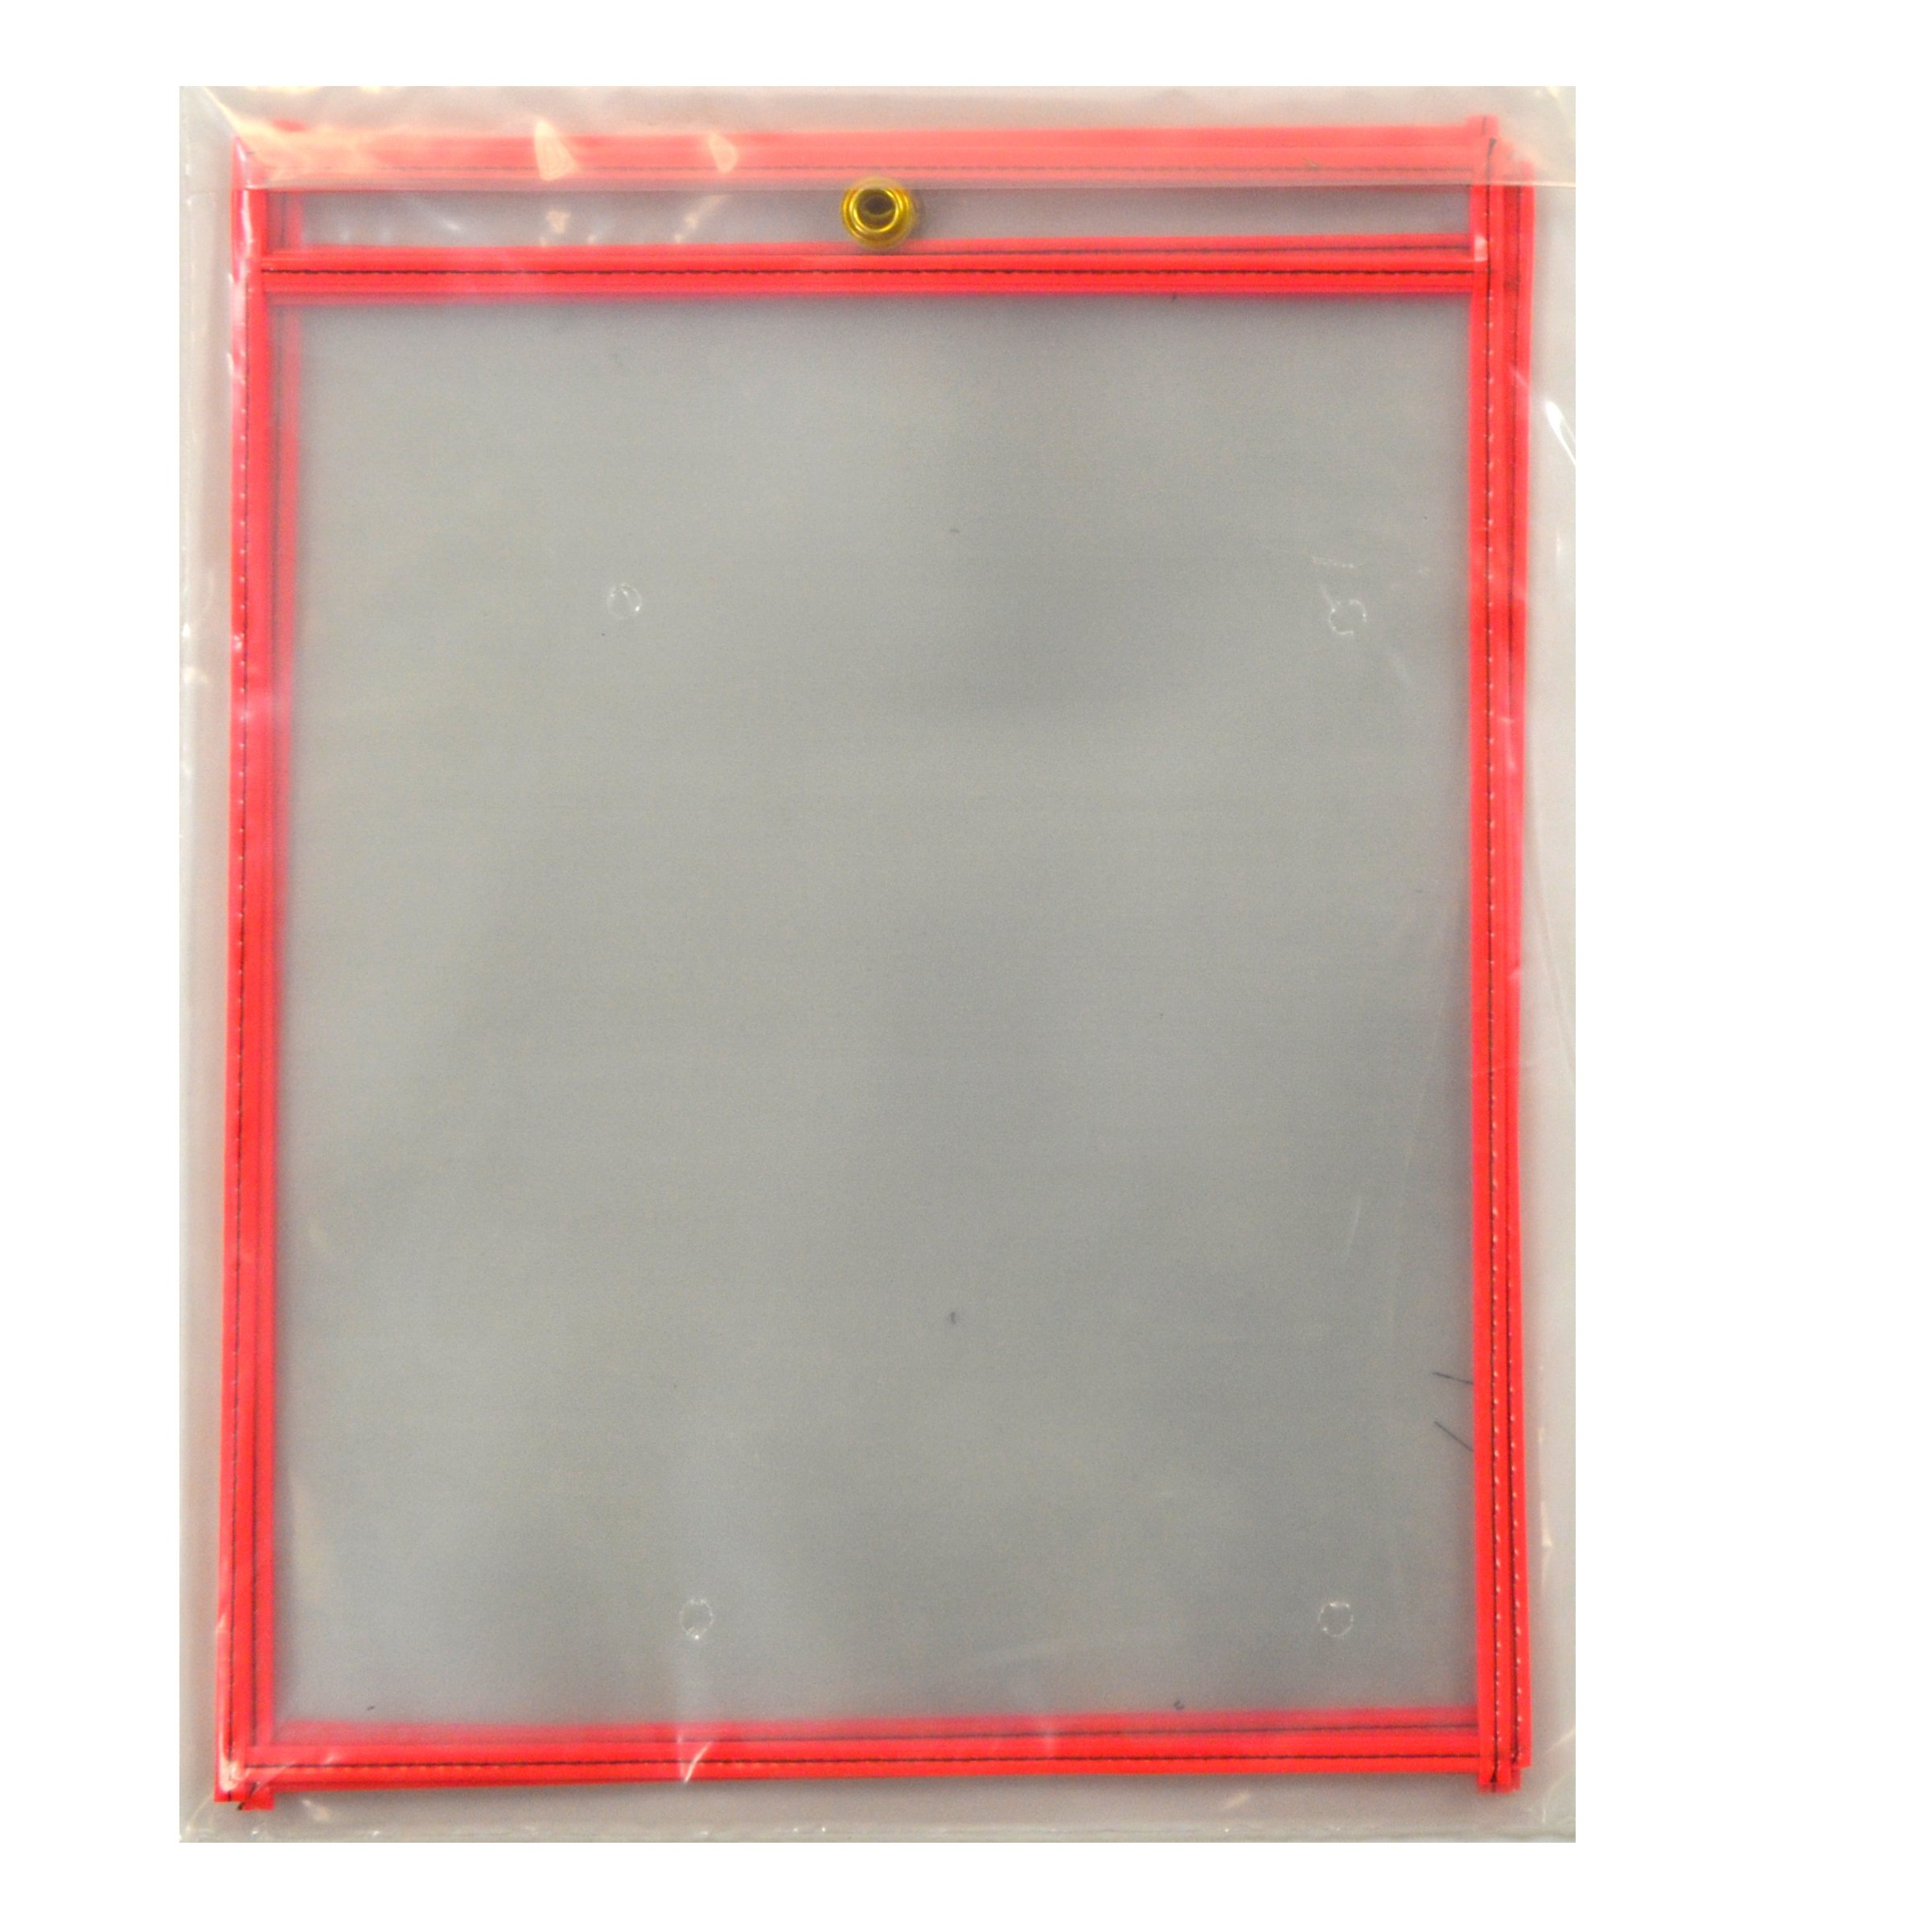 C-Line Stitched Shop Ticket Holders, Both Sides Clear, 8-1/2'' x 11'', 5 per Pack, Neon Red (40463)